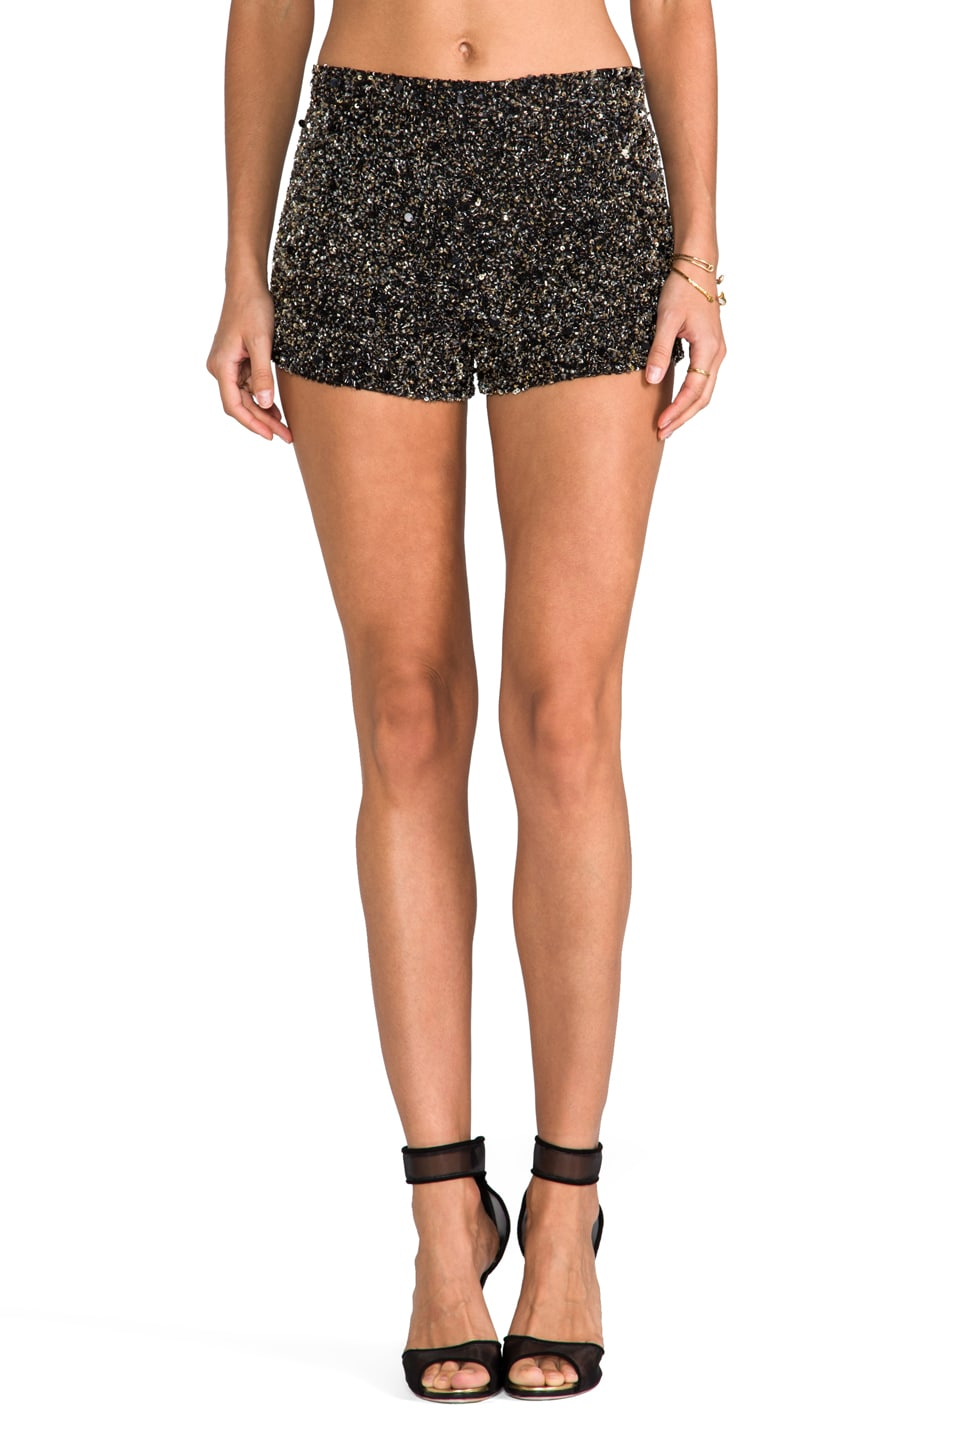 Karina Grimaldi Dallas Beaded Shorts in Black